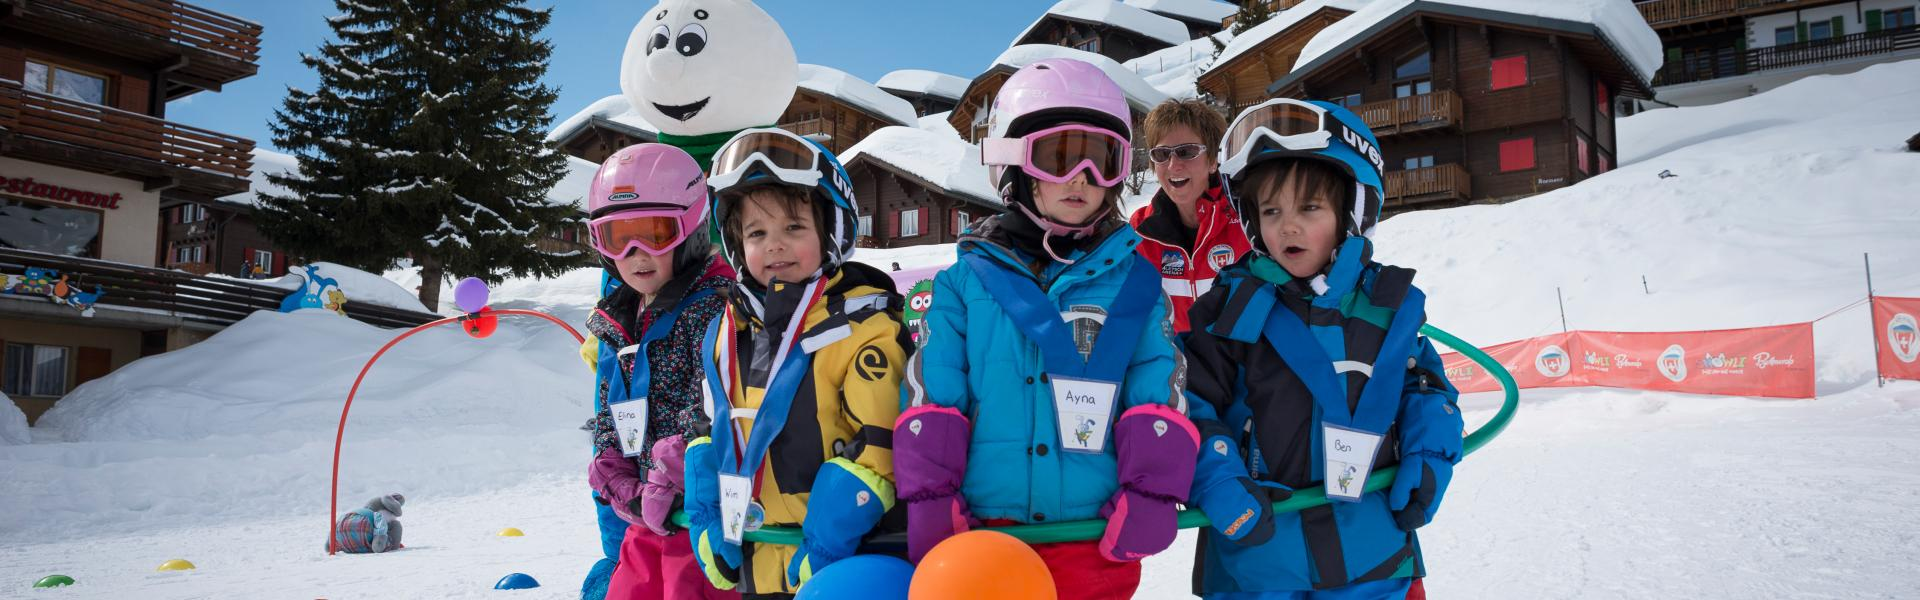 Group photo of the apprentice skiers at the snow garden in Bettmeralp with the mascot